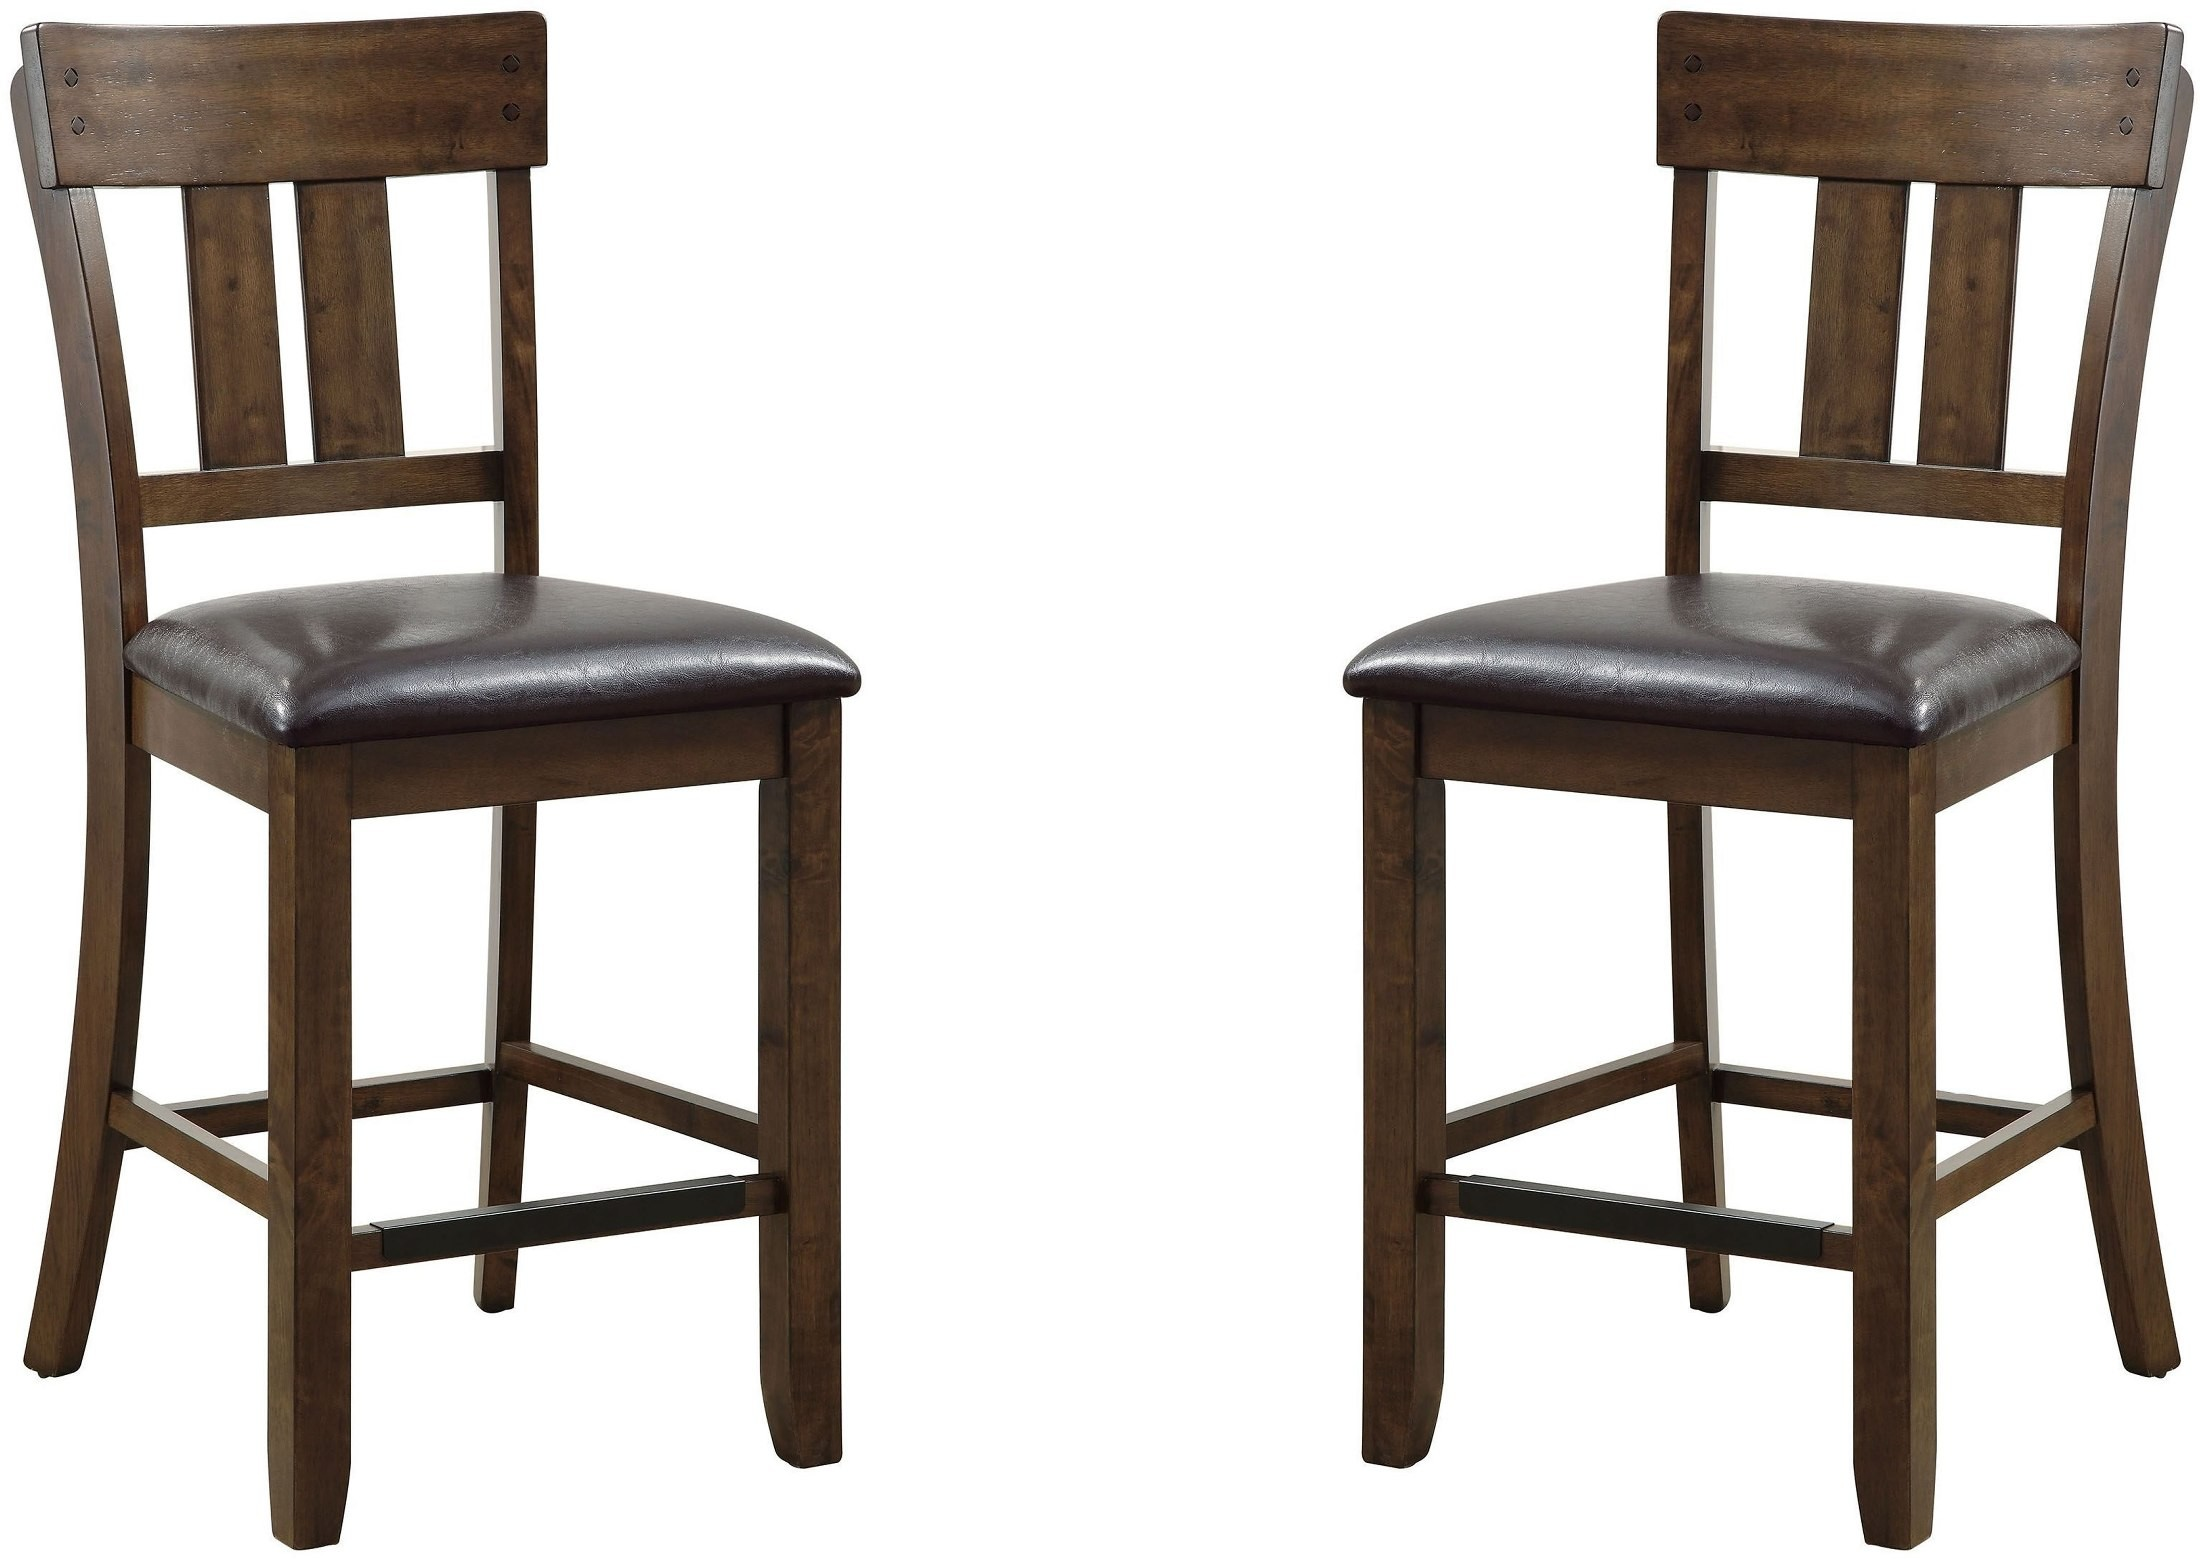 Very Impressive portraiture of  Oak Counter Height Chair Set Of 2 CM3355PC 2PK Furniture of America with #3D2C20 color and 2200x1563 pixels